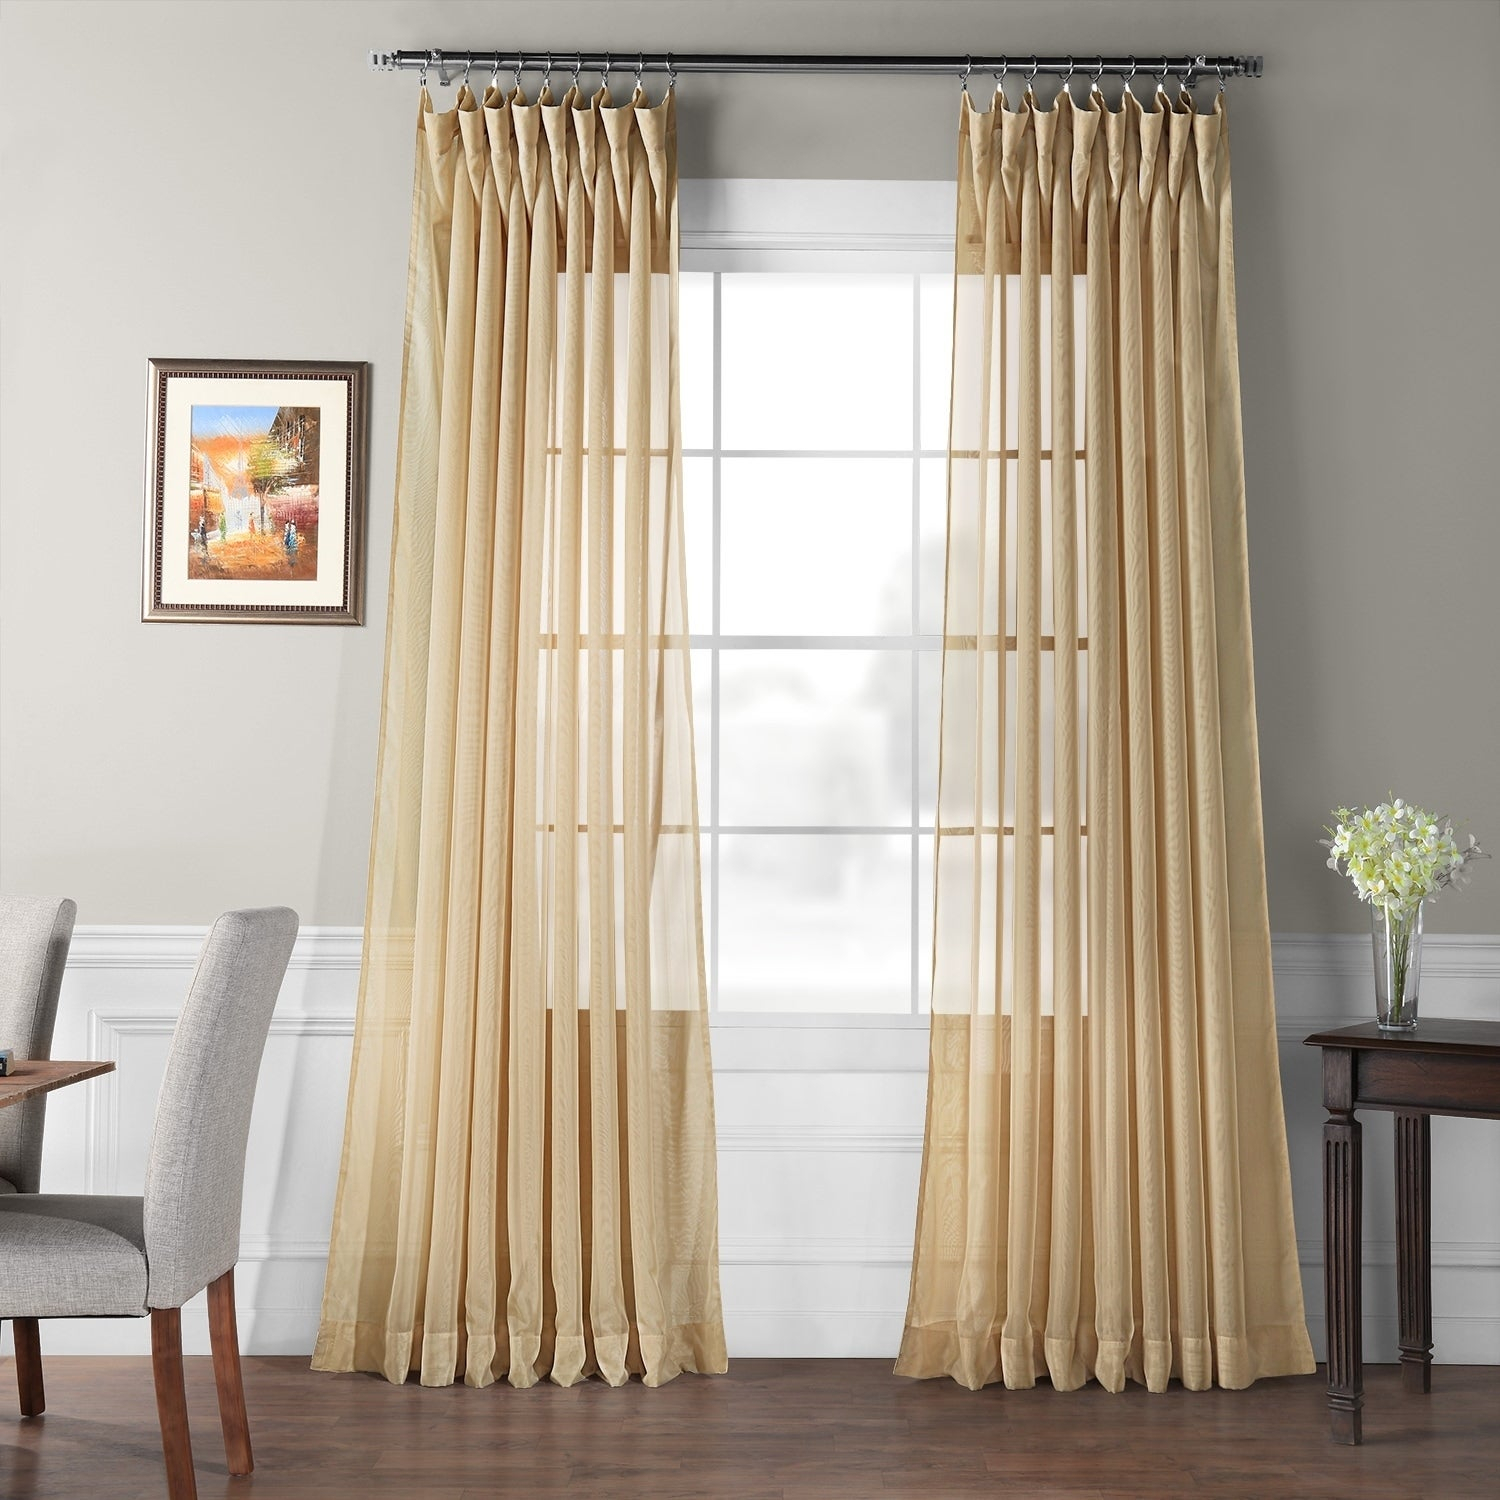 Exclusive Fabrics Signature Extrawide Double Layer Sheer Curtain Panel Throughout Signature Extrawide Double Layer Sheer Curtain Panels (View 7 of 11)